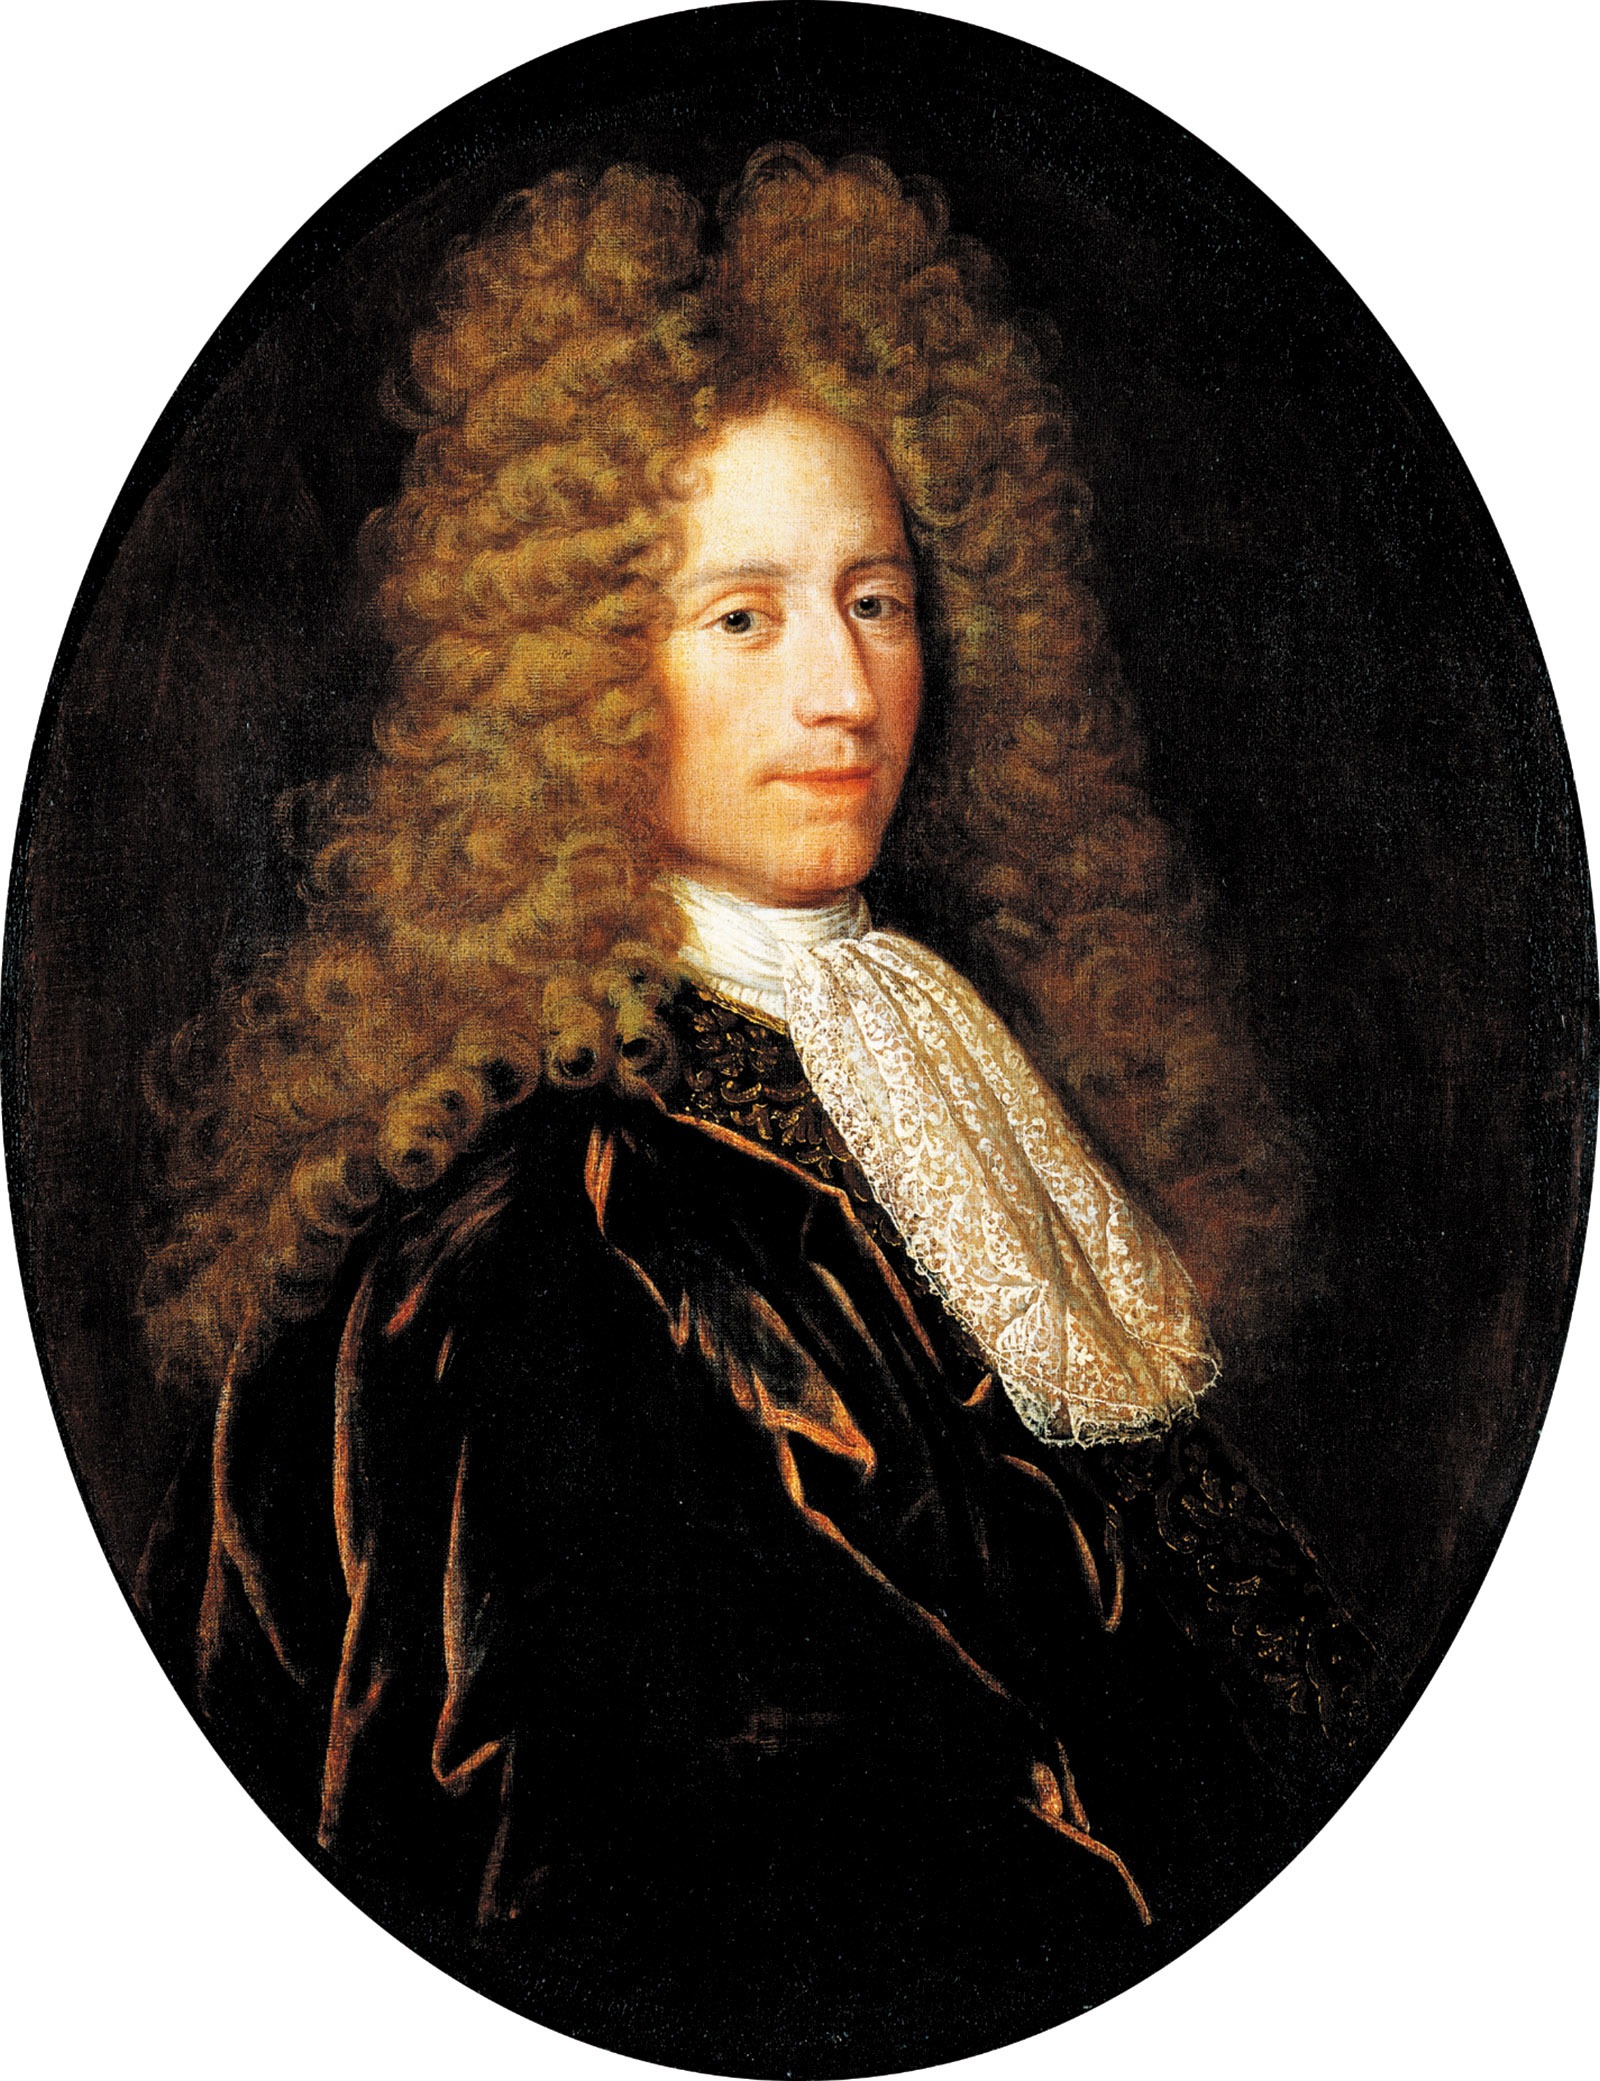 Painting of John Law by Alexis Simon Belle, circa 1715–1720